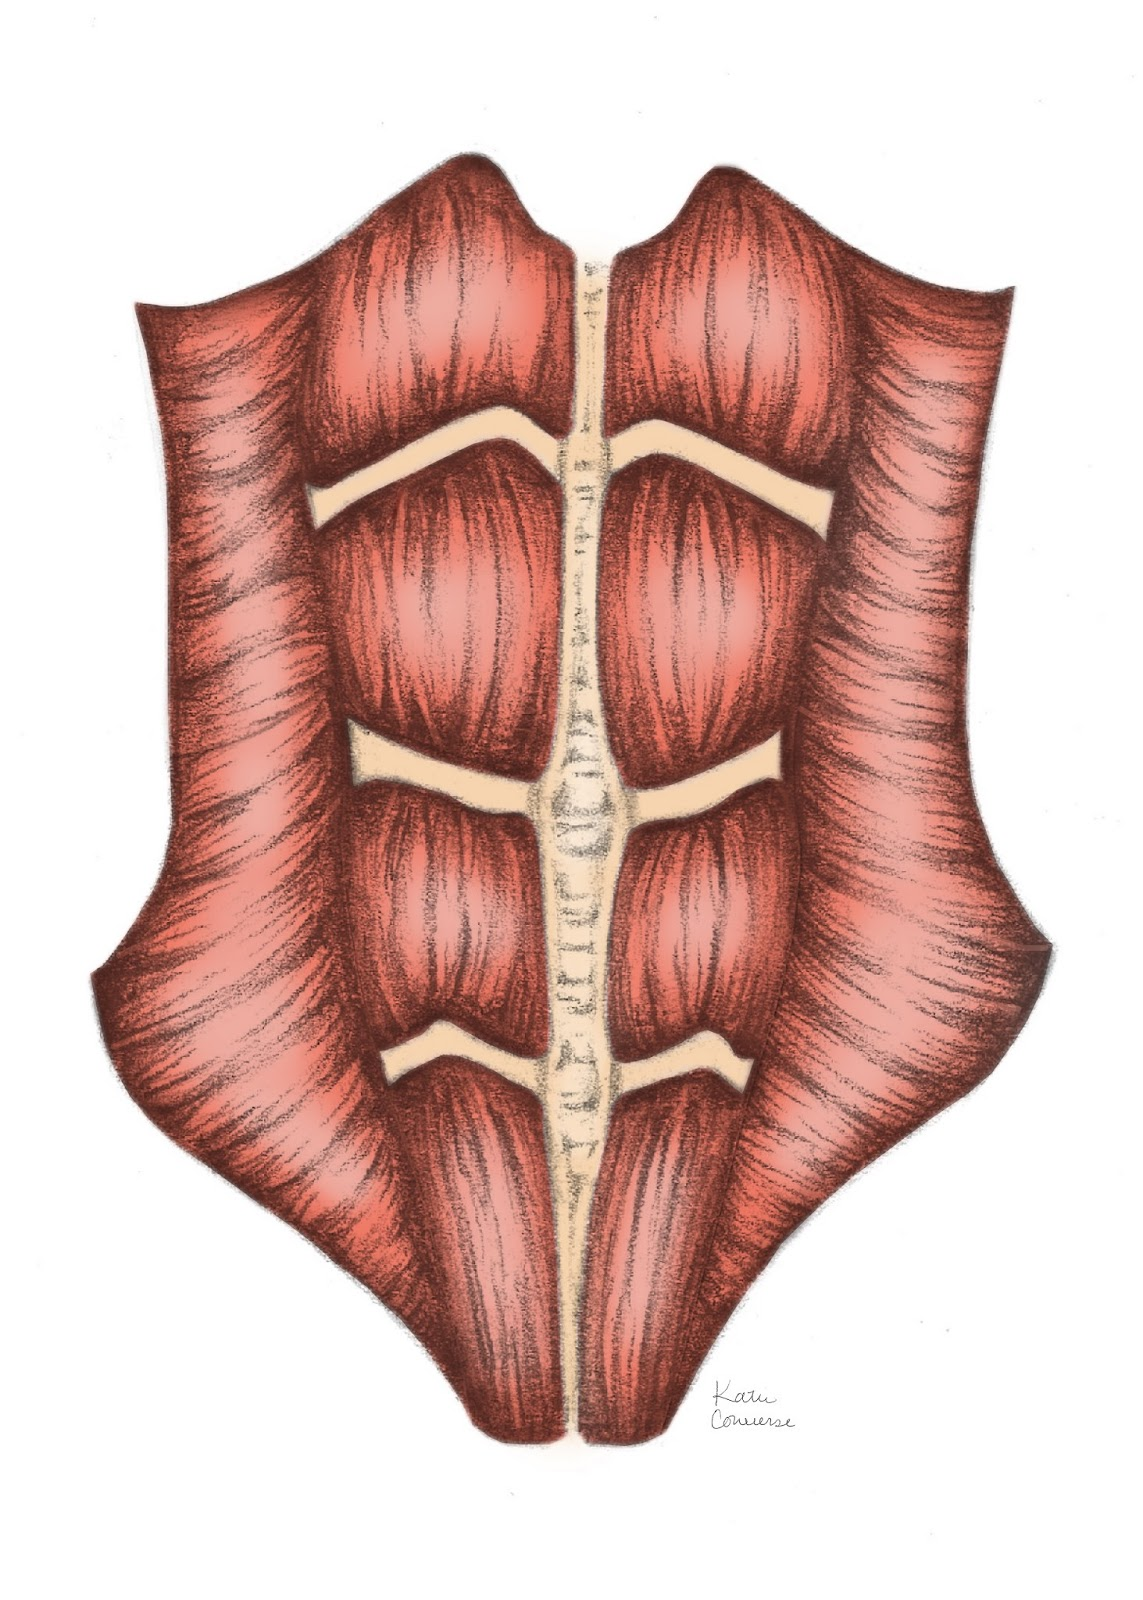 abdominal muscles and connective tissue before pregnancy usually some women may have a separation from previous pregnancy  [ 1143 x 1600 Pixel ]